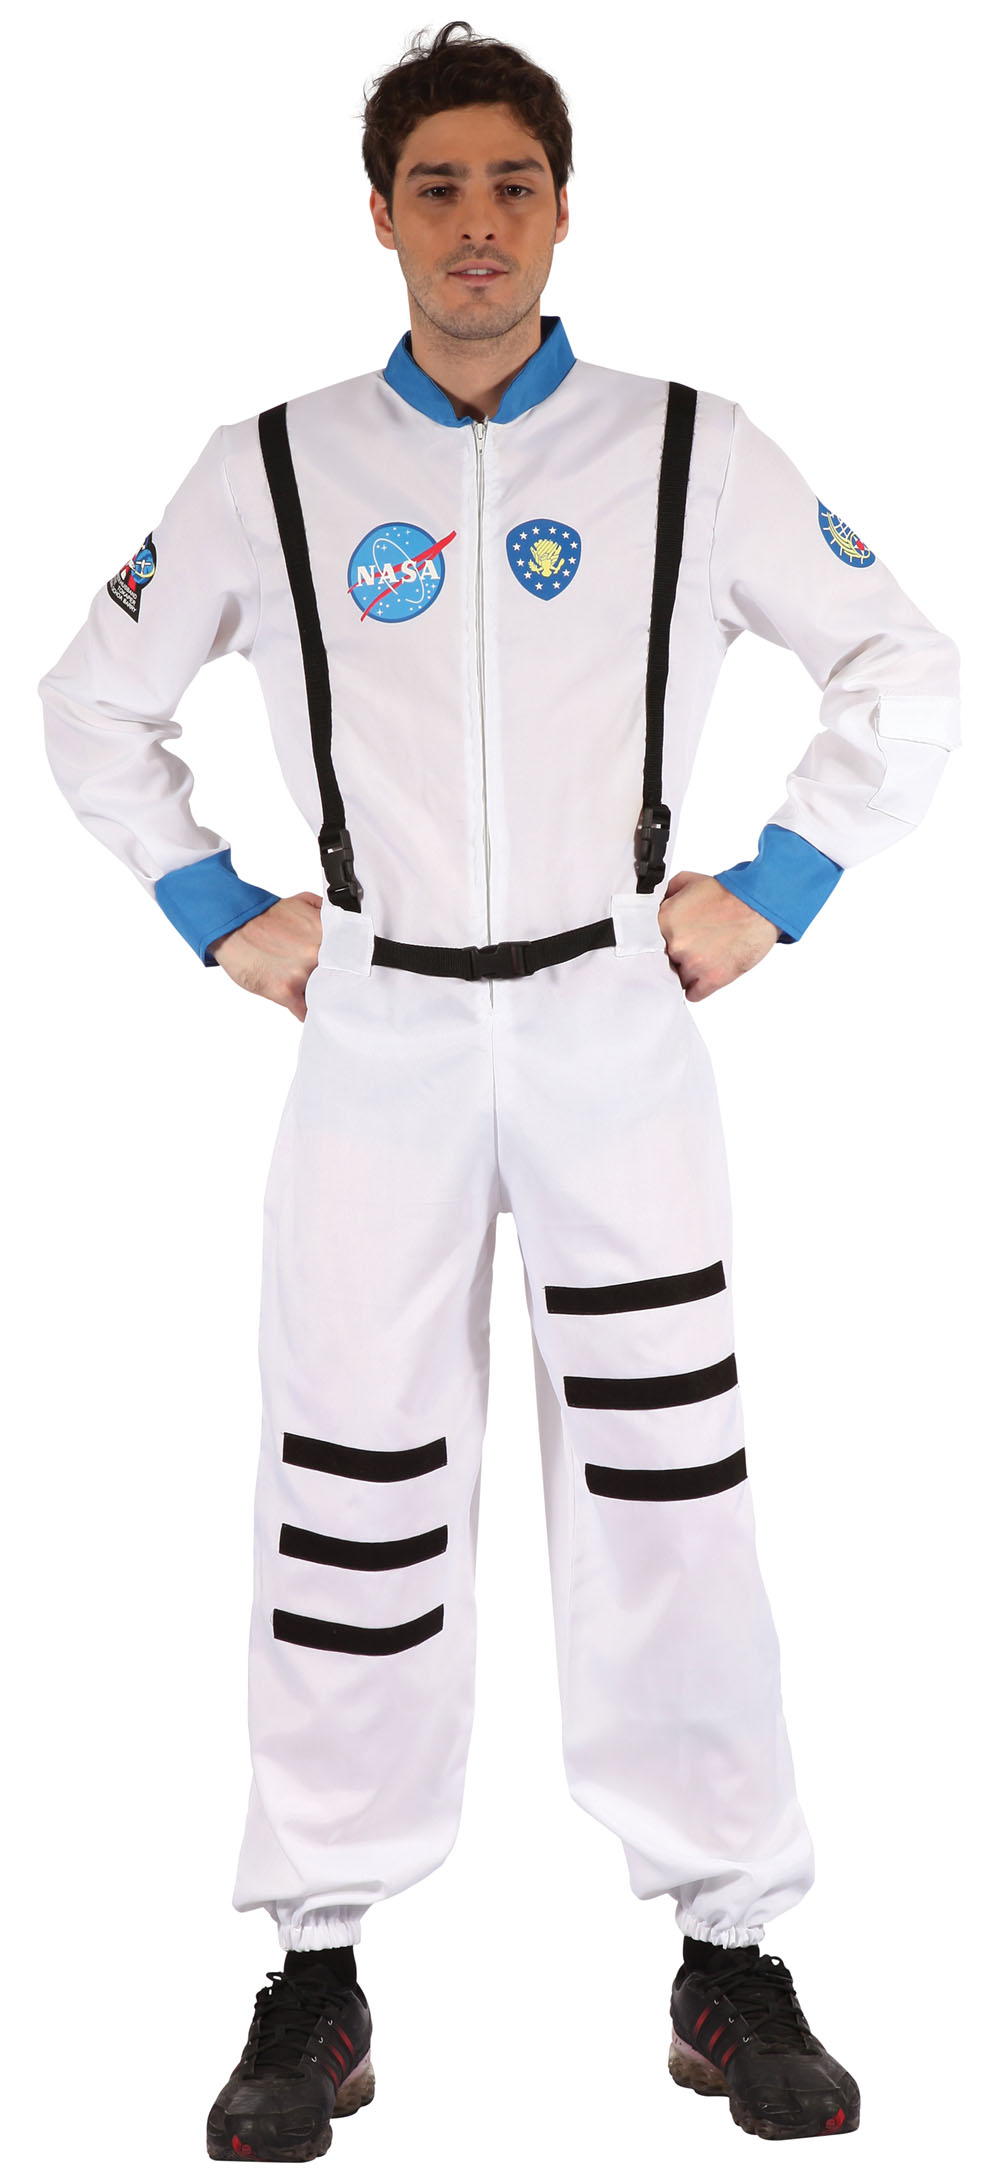 Mens White Astronaut Space Suit Fancy Dress Costume Rocket Spaceship Outfit New